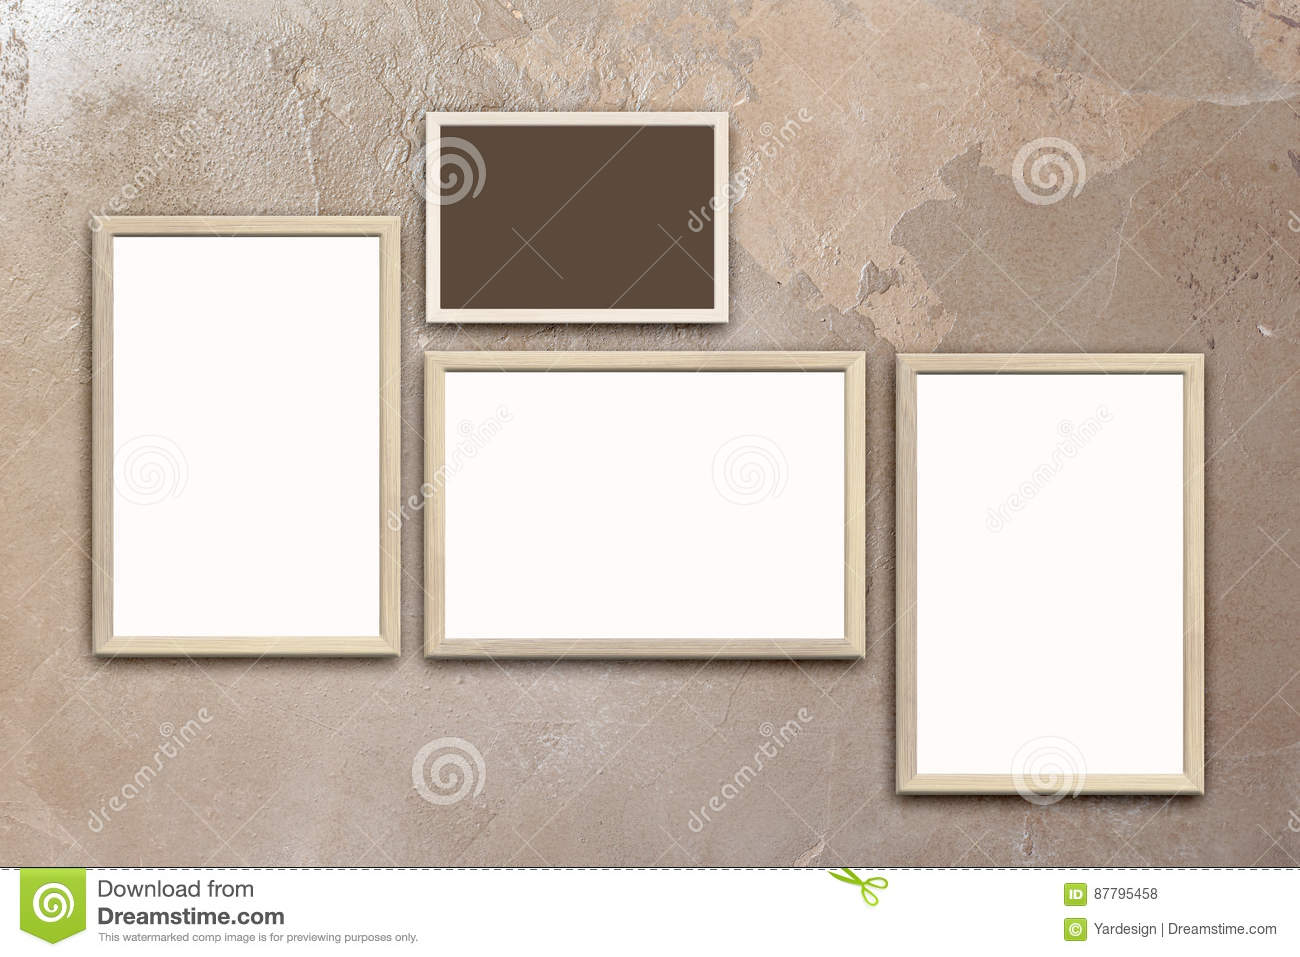 Template Of Blank Posters In Wooden Frames On Texturized Brown ...